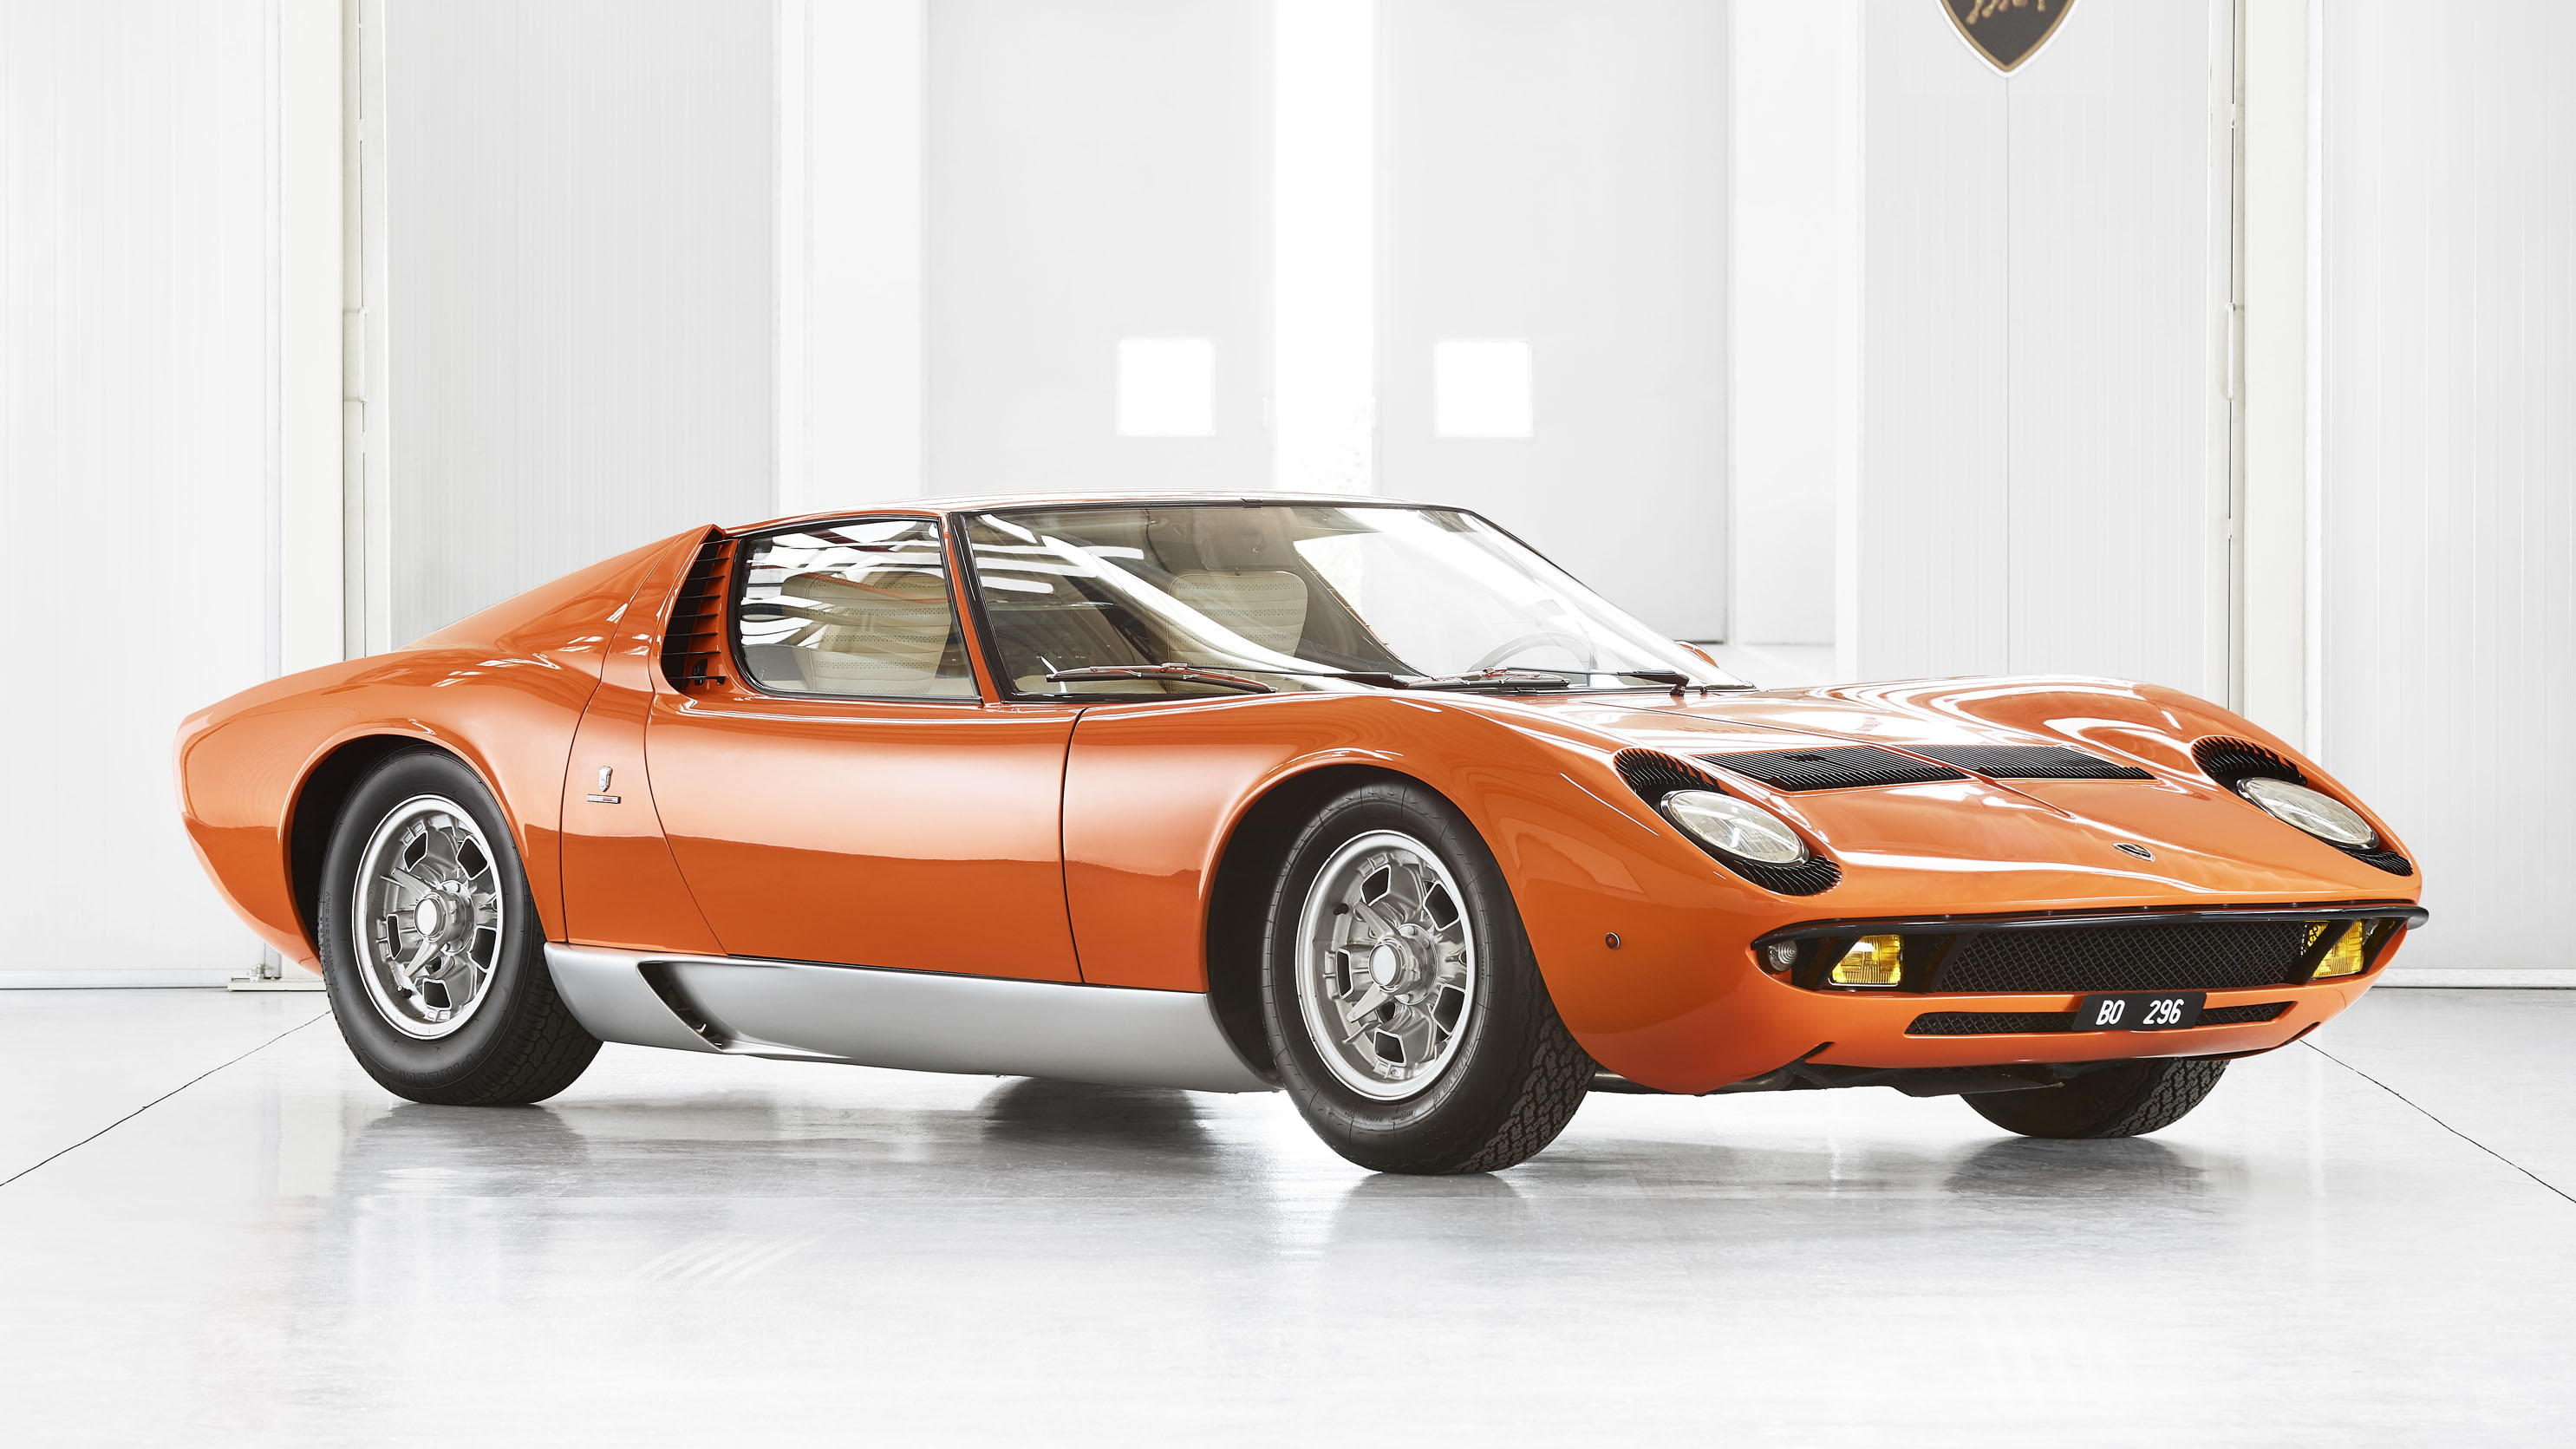 The Lambo Miura is so special it's got its own Concours class